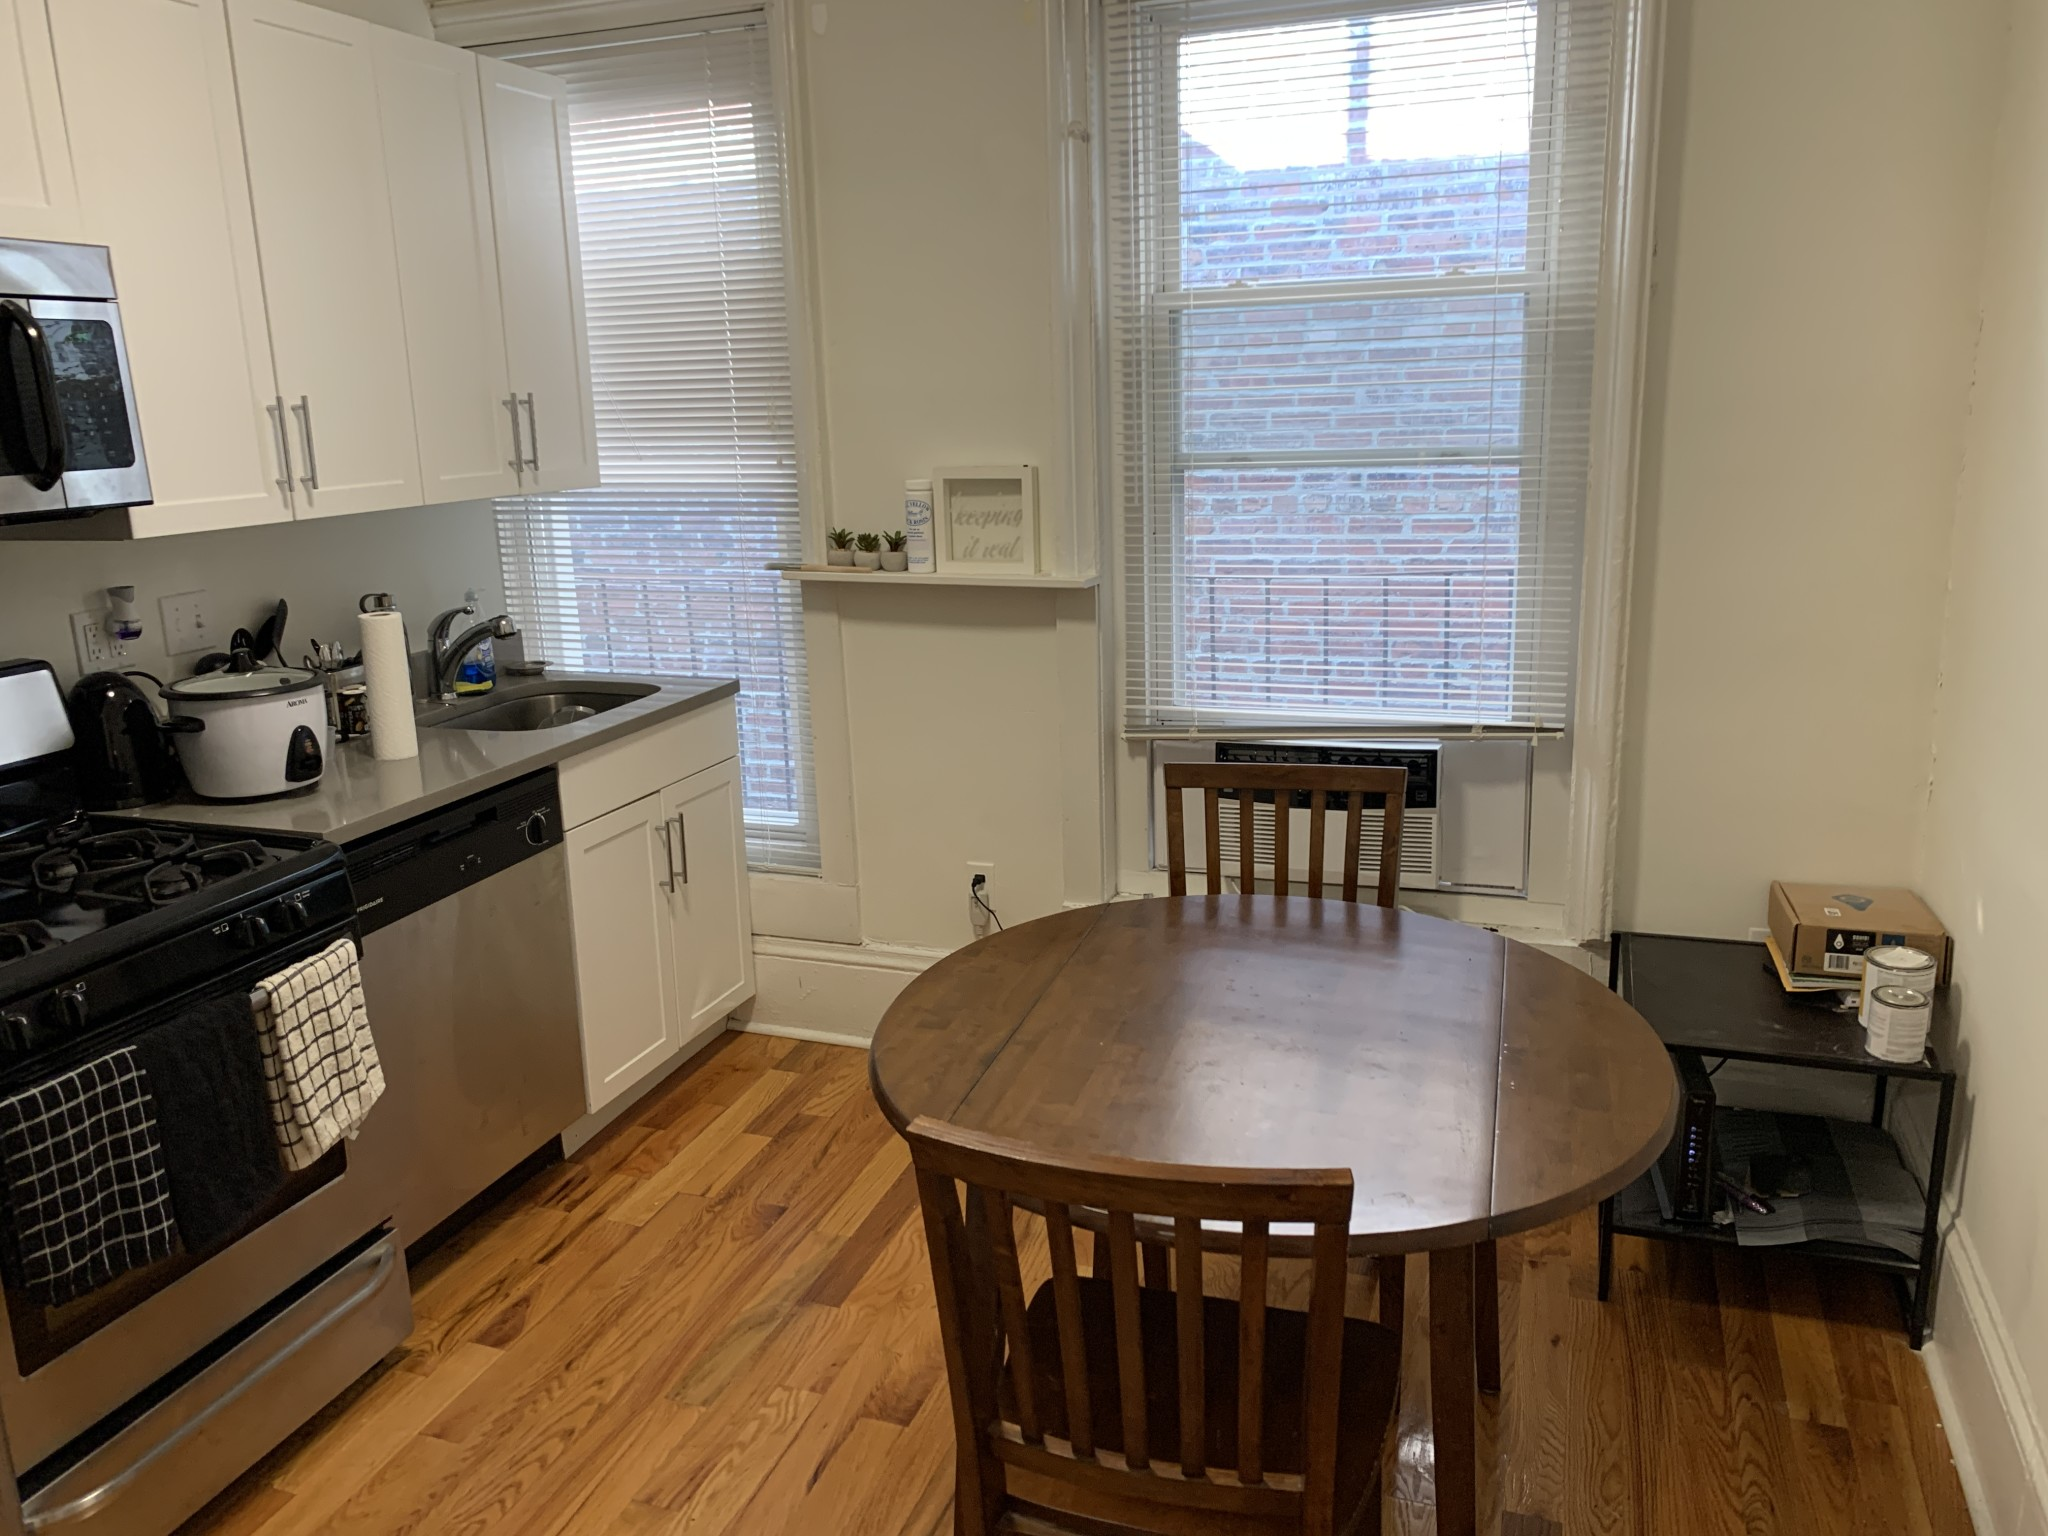 Studio, 1 Bath apartment in Boston, South End for $1,500